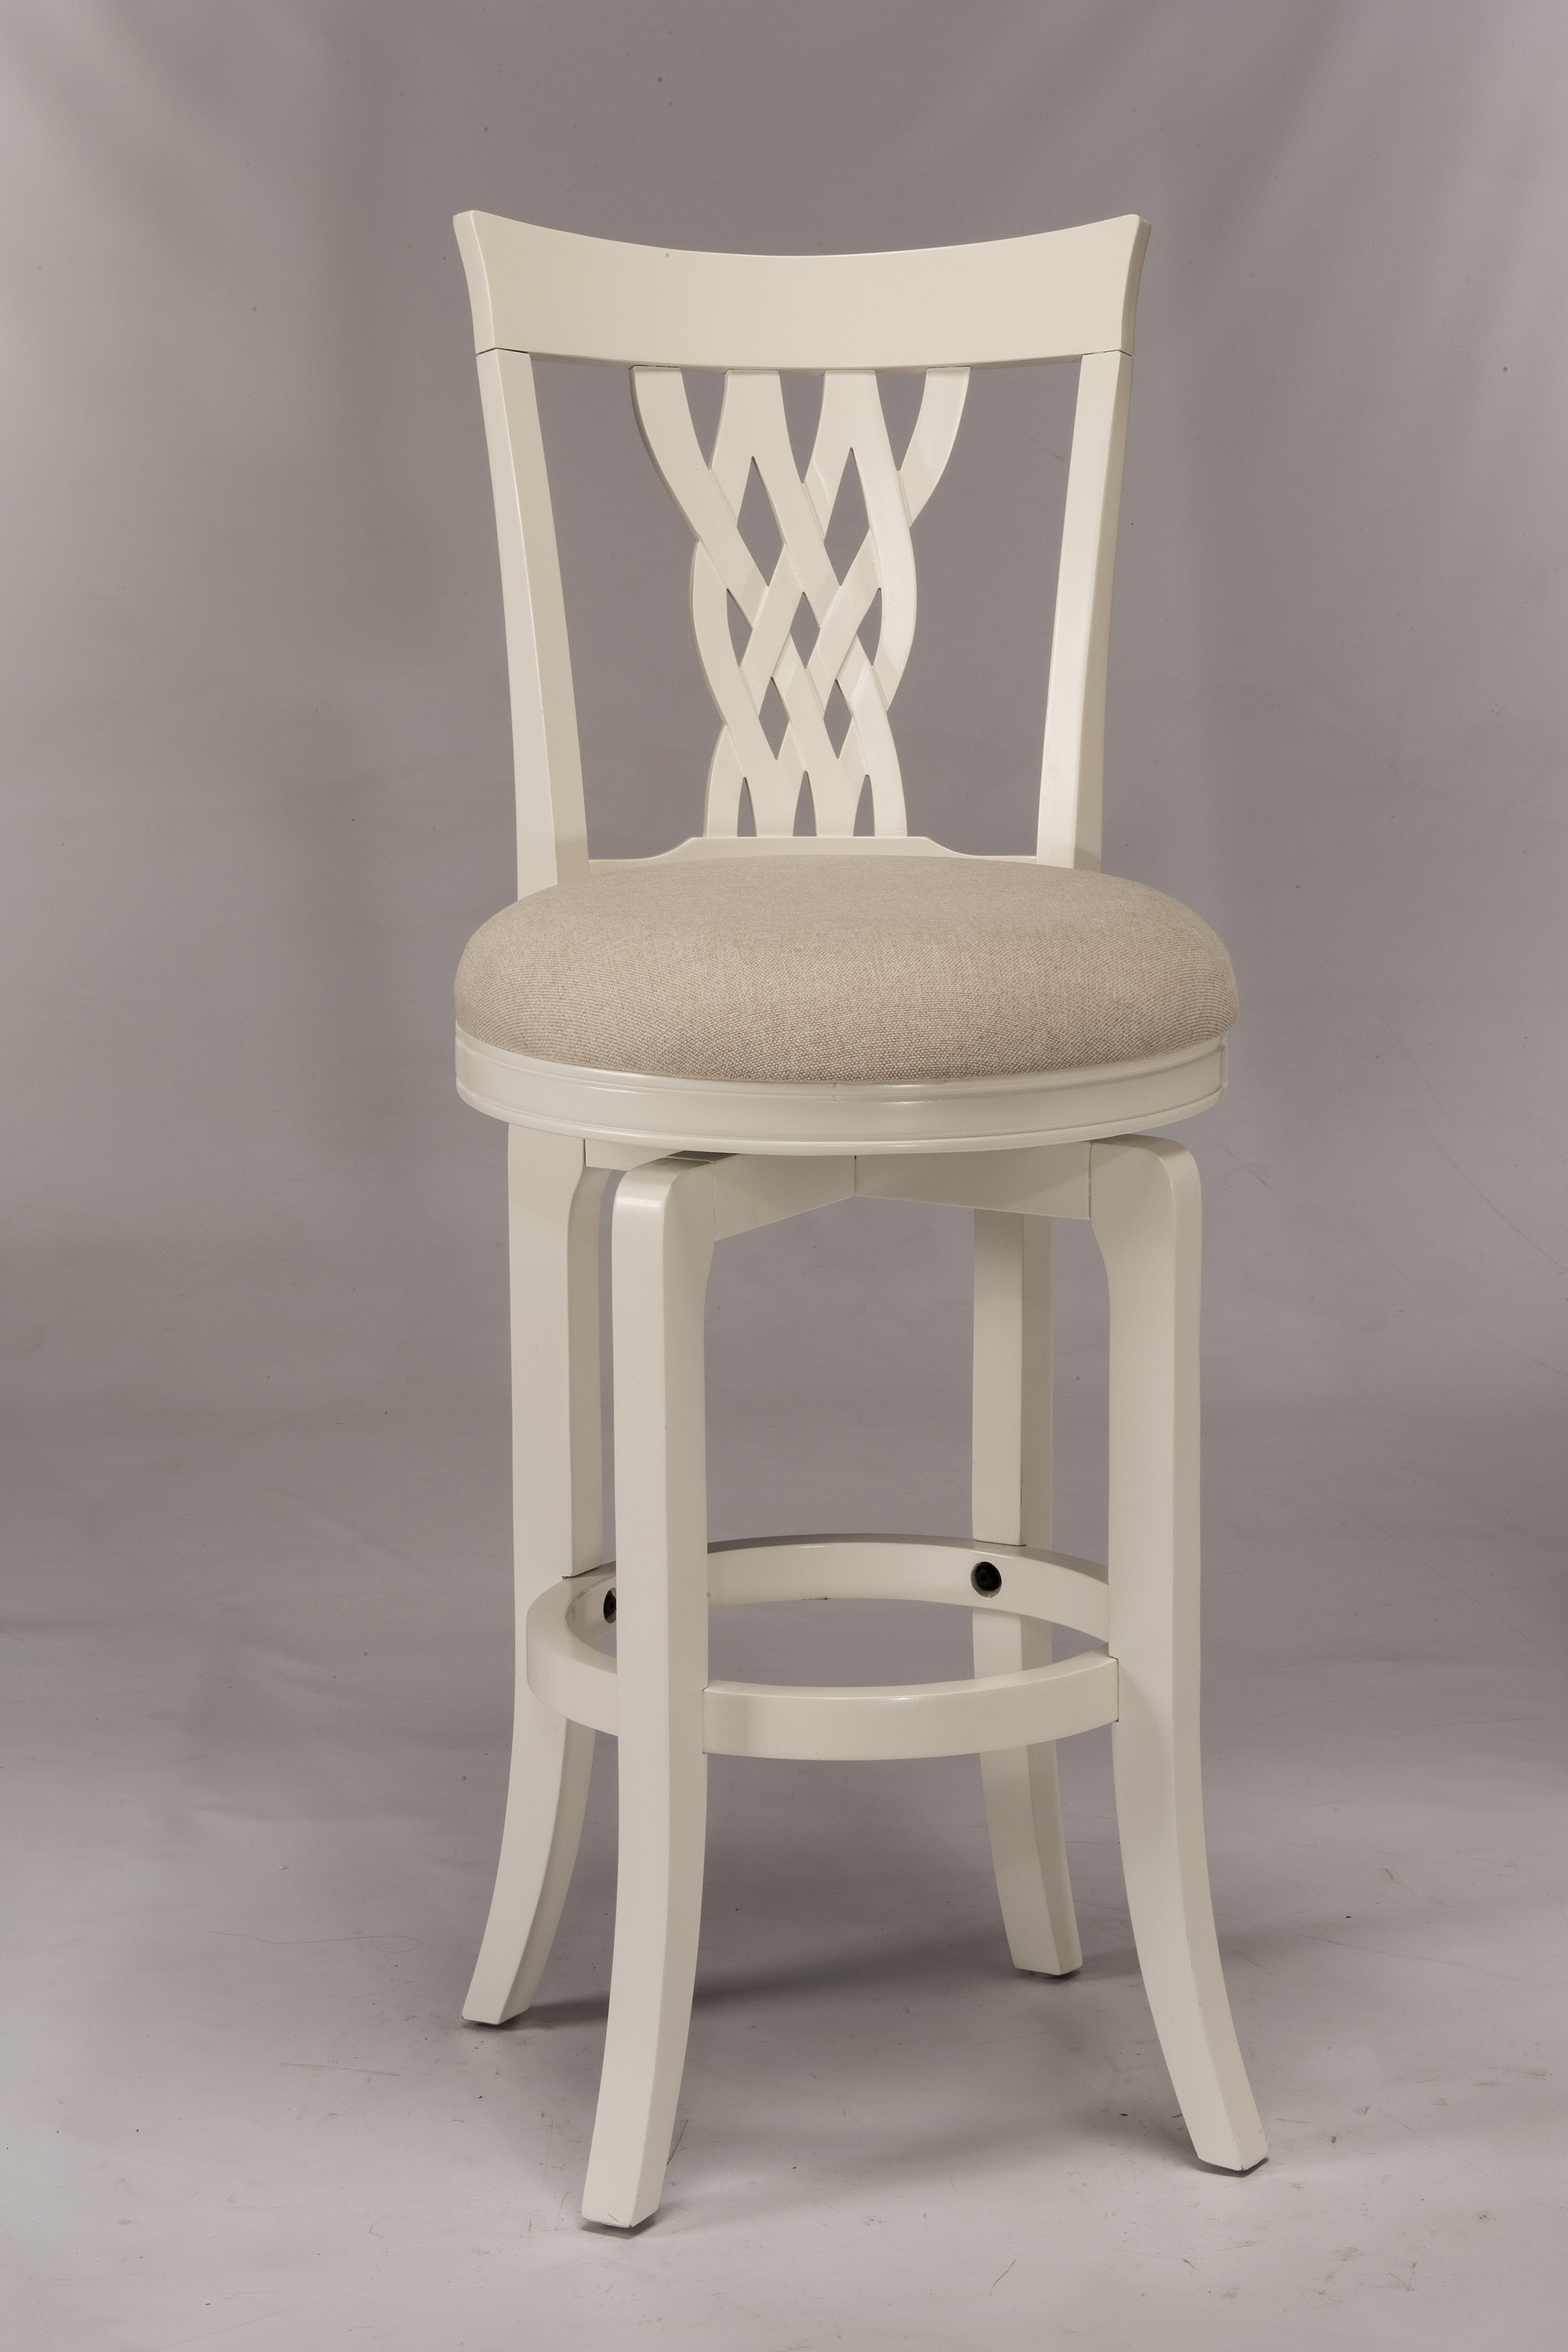 hillsdale wood stools white swiveling counter stool with braided wooden back olinde 39 s. Black Bedroom Furniture Sets. Home Design Ideas